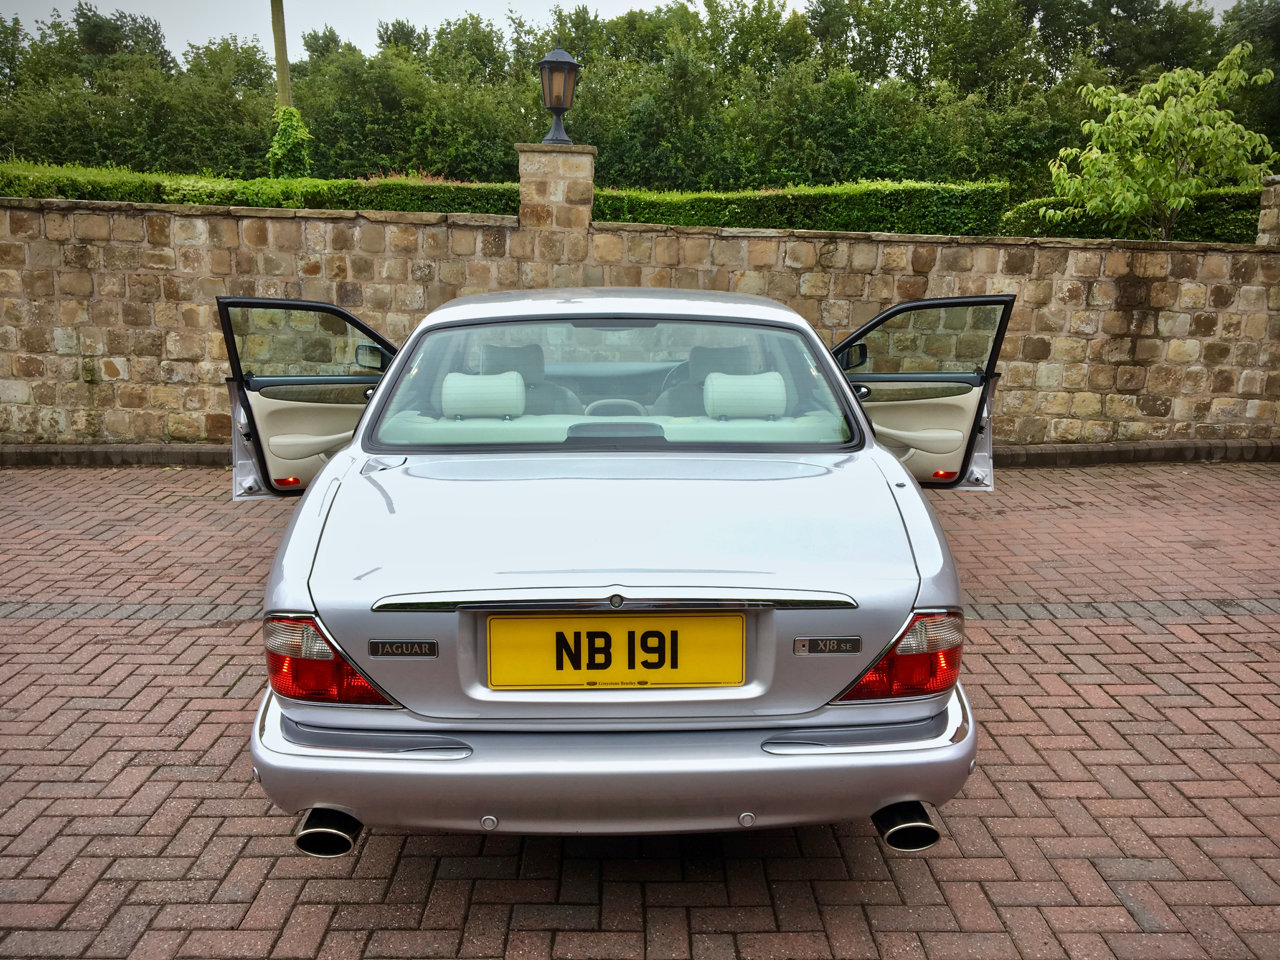 2002 Jag XJ8 4.0 V8 Sport - Swap Rolls or Classic Car For Sale (picture 4 of 6)